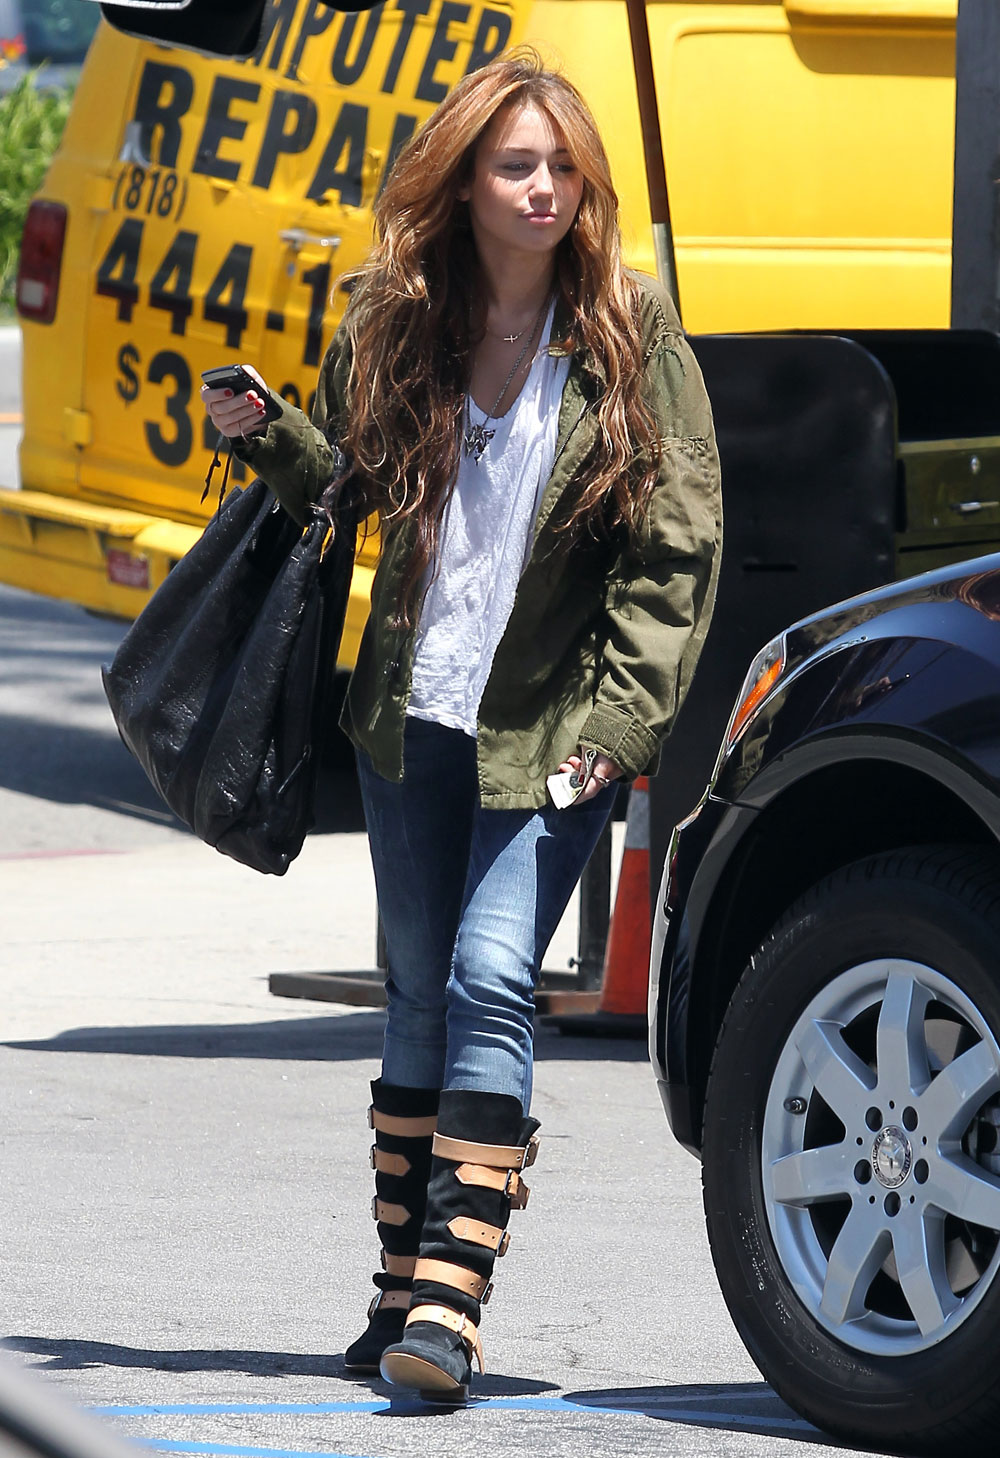 Is Miley Cyrus Enrolled in College in the O.C.?